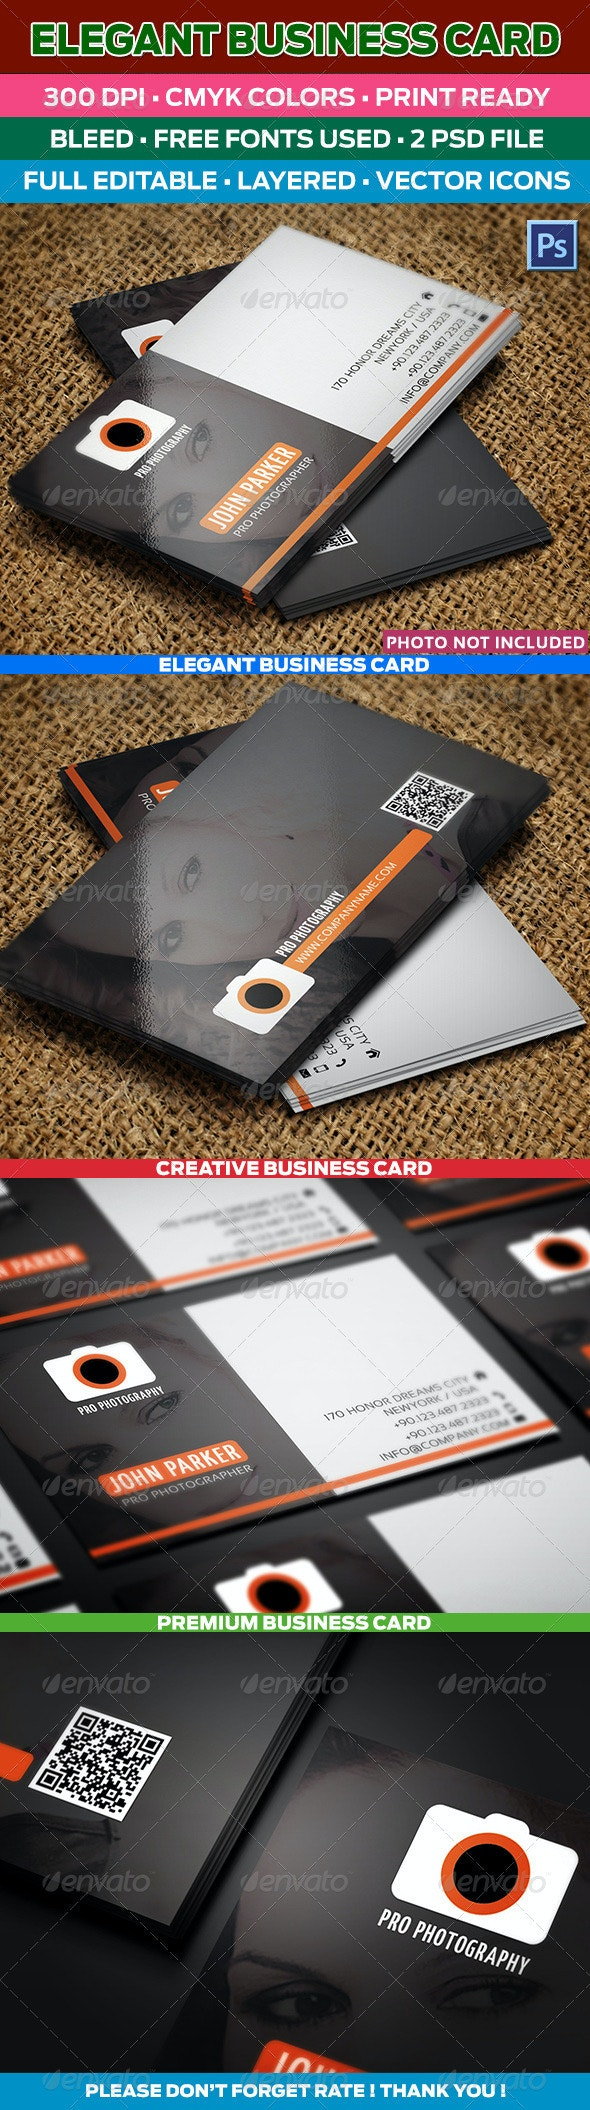 Pro Photographer Business Card 74 - Creative Business Cards